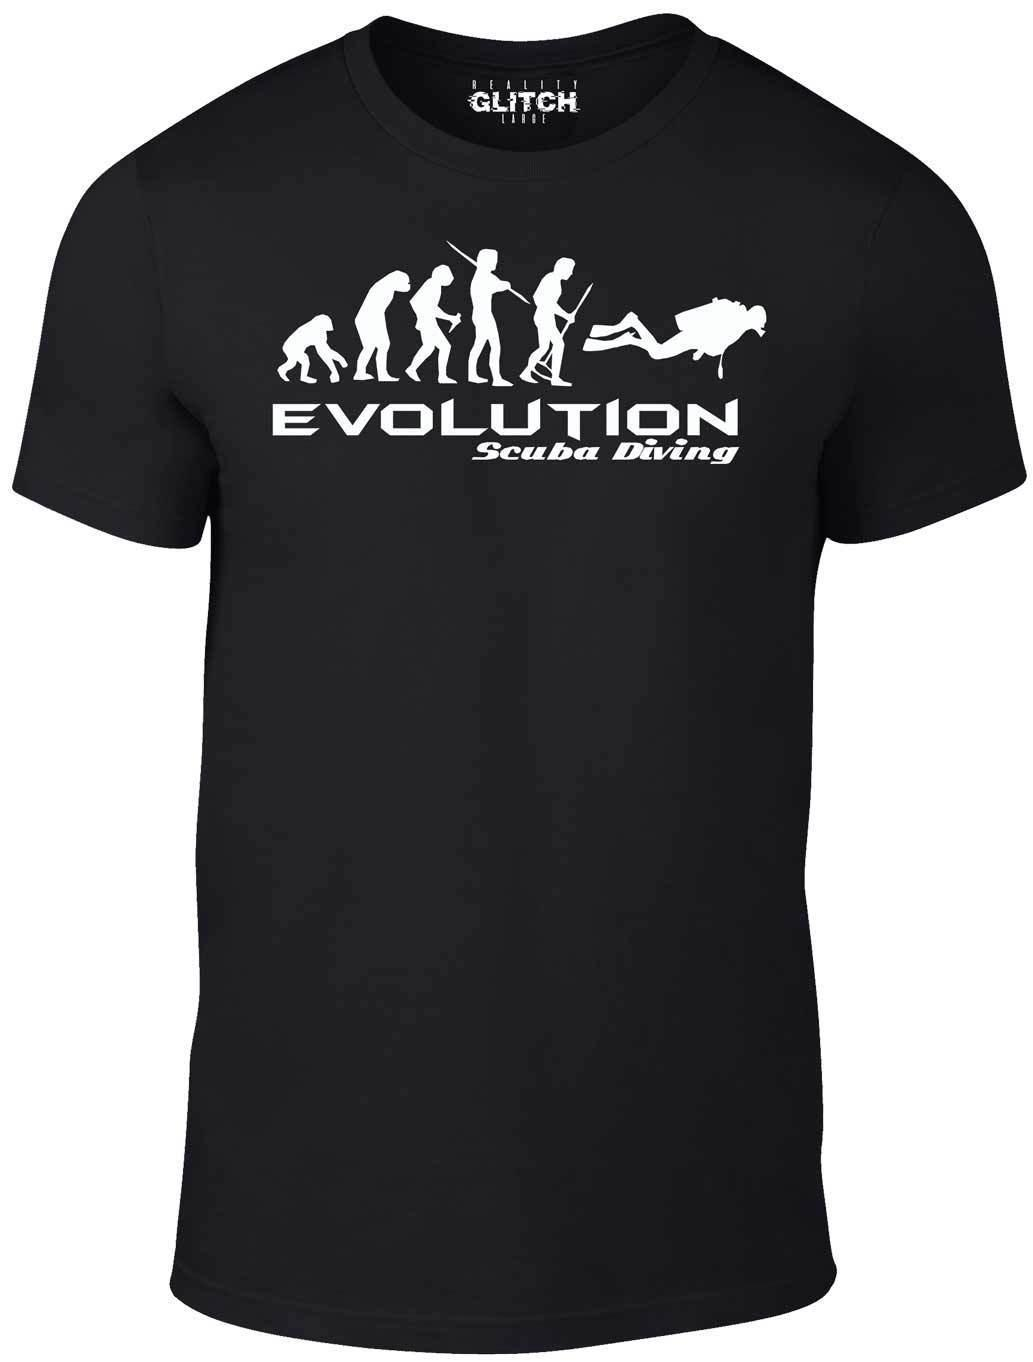 80fc082006 Evolution Of Scuba Diving T Shirt Funny T Shirt Swim Retro Sea Cool Boat  Party Shirt And Tshirt Create Your Own T Shirt Design From Linnan00008, .